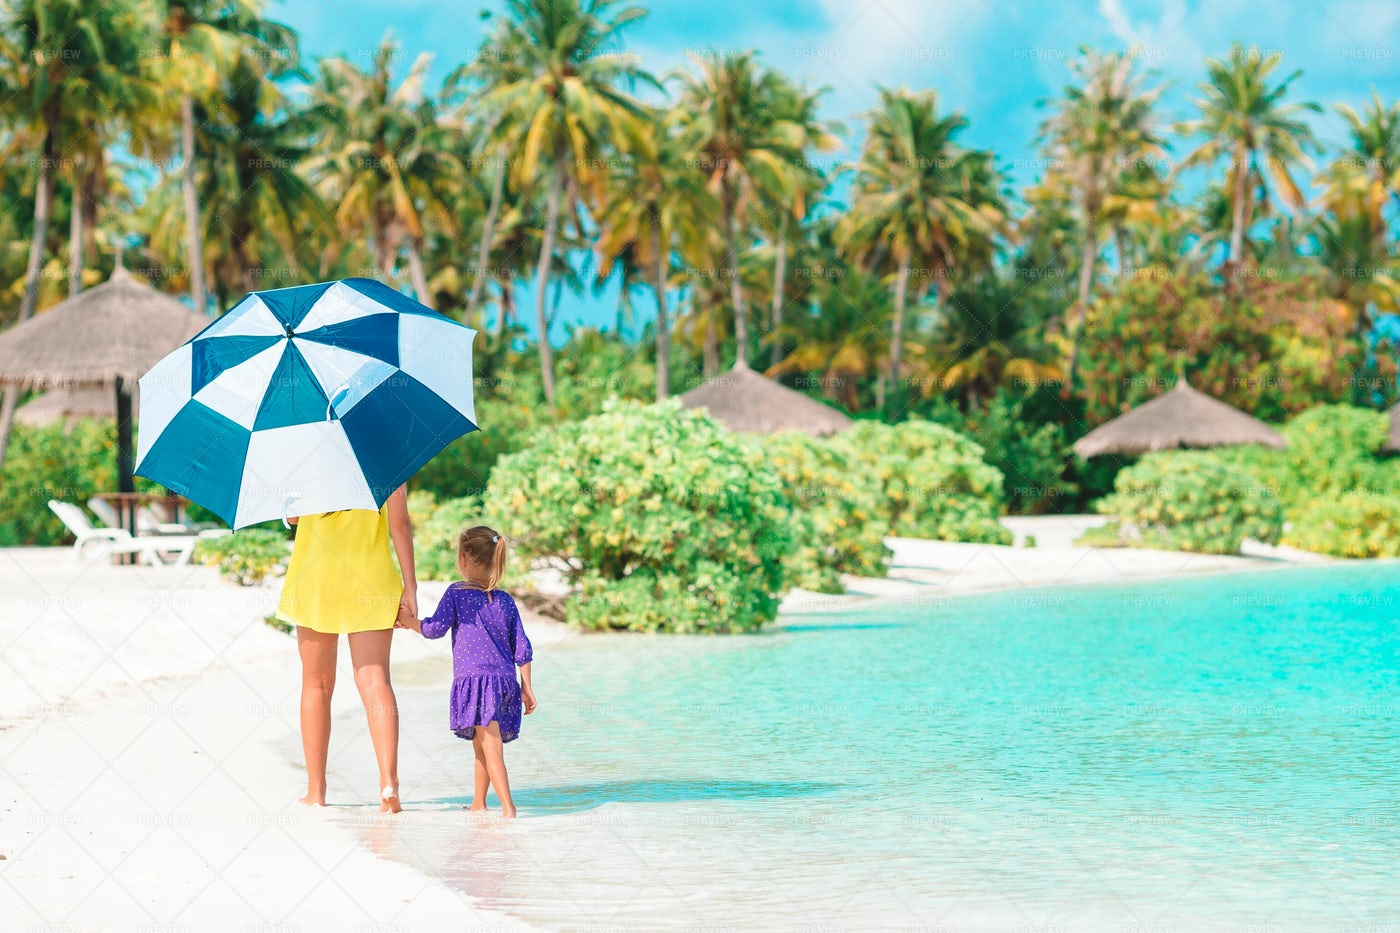 Mom And Kid Walking With An Umbrella: Stock Photos